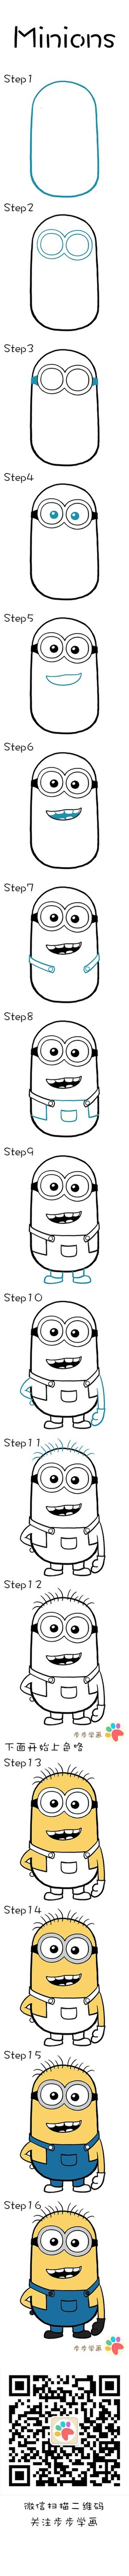 Learn how to draw Minions https://noahxnw.tumblr.com/post/160768966911/spaghetti-with-smoky-tomato-seafood-sauce